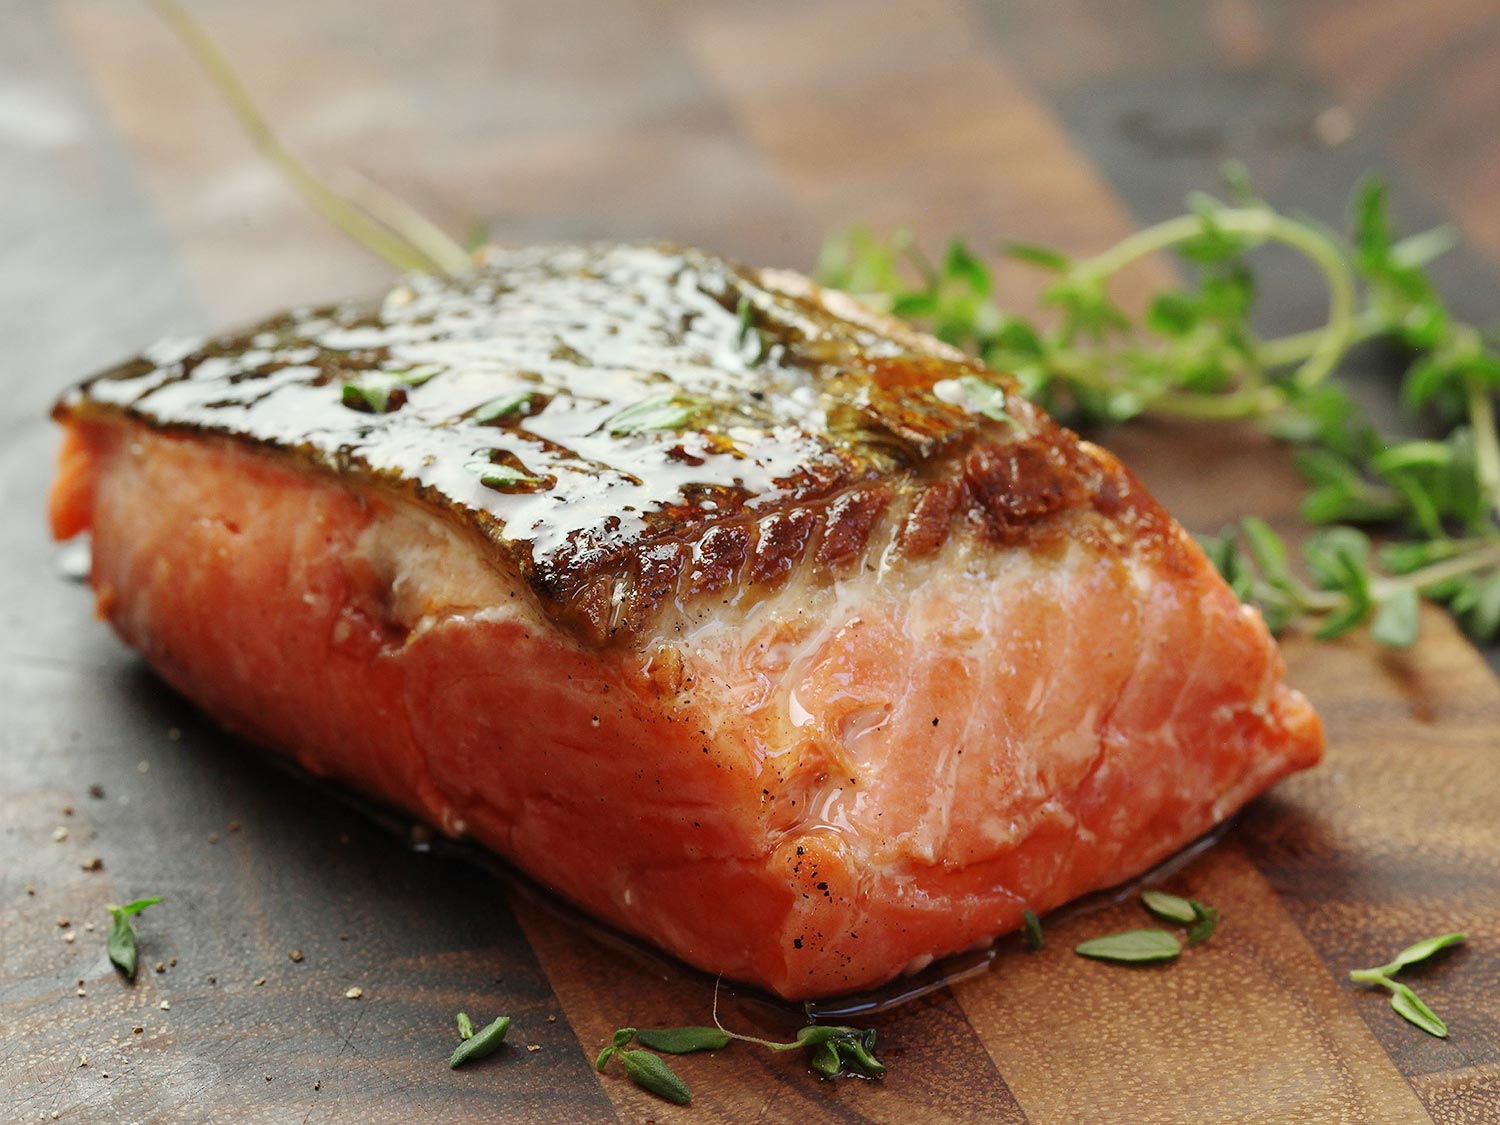 A piece of cooked salmon. Salmon contains omega-3 fatty acids which can help the brain heal and recover from damage.